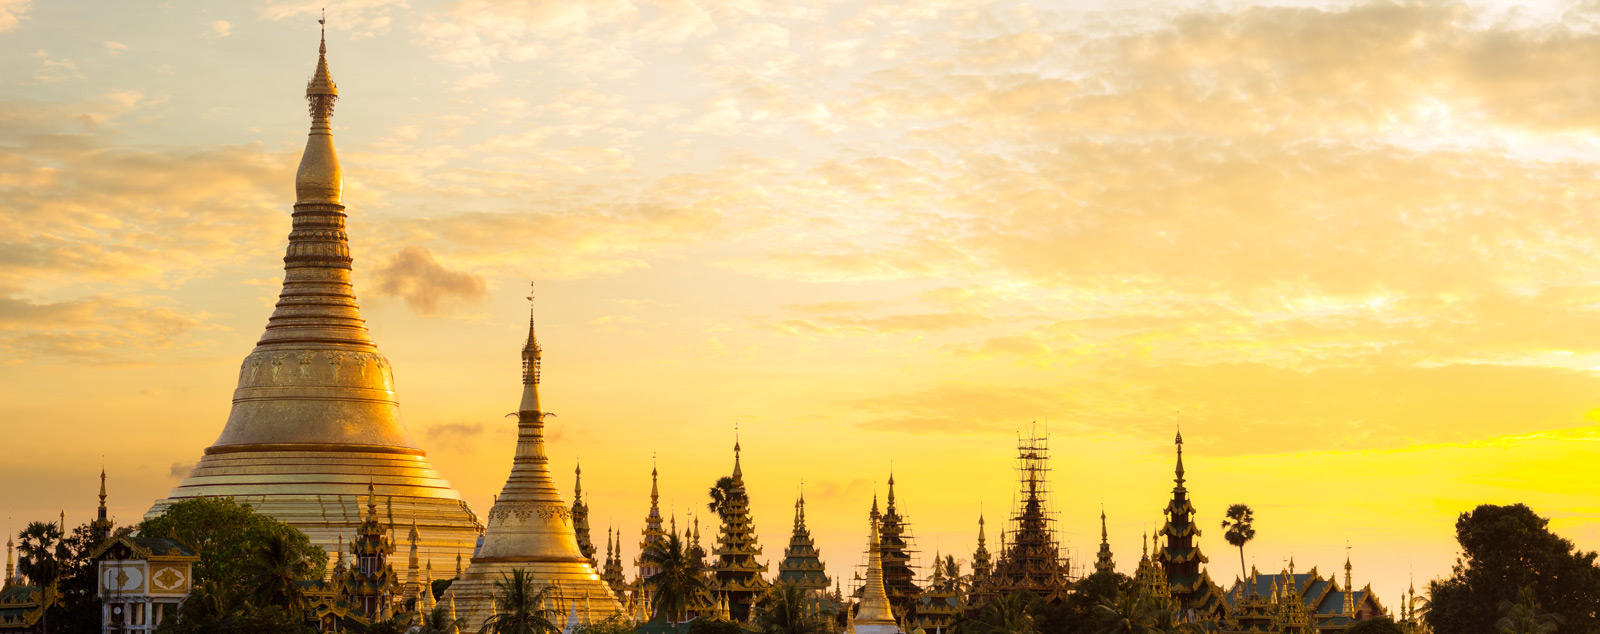 A tall golden pagoda spire reaching into the sky with a yellow sunset brightly reflecting off it